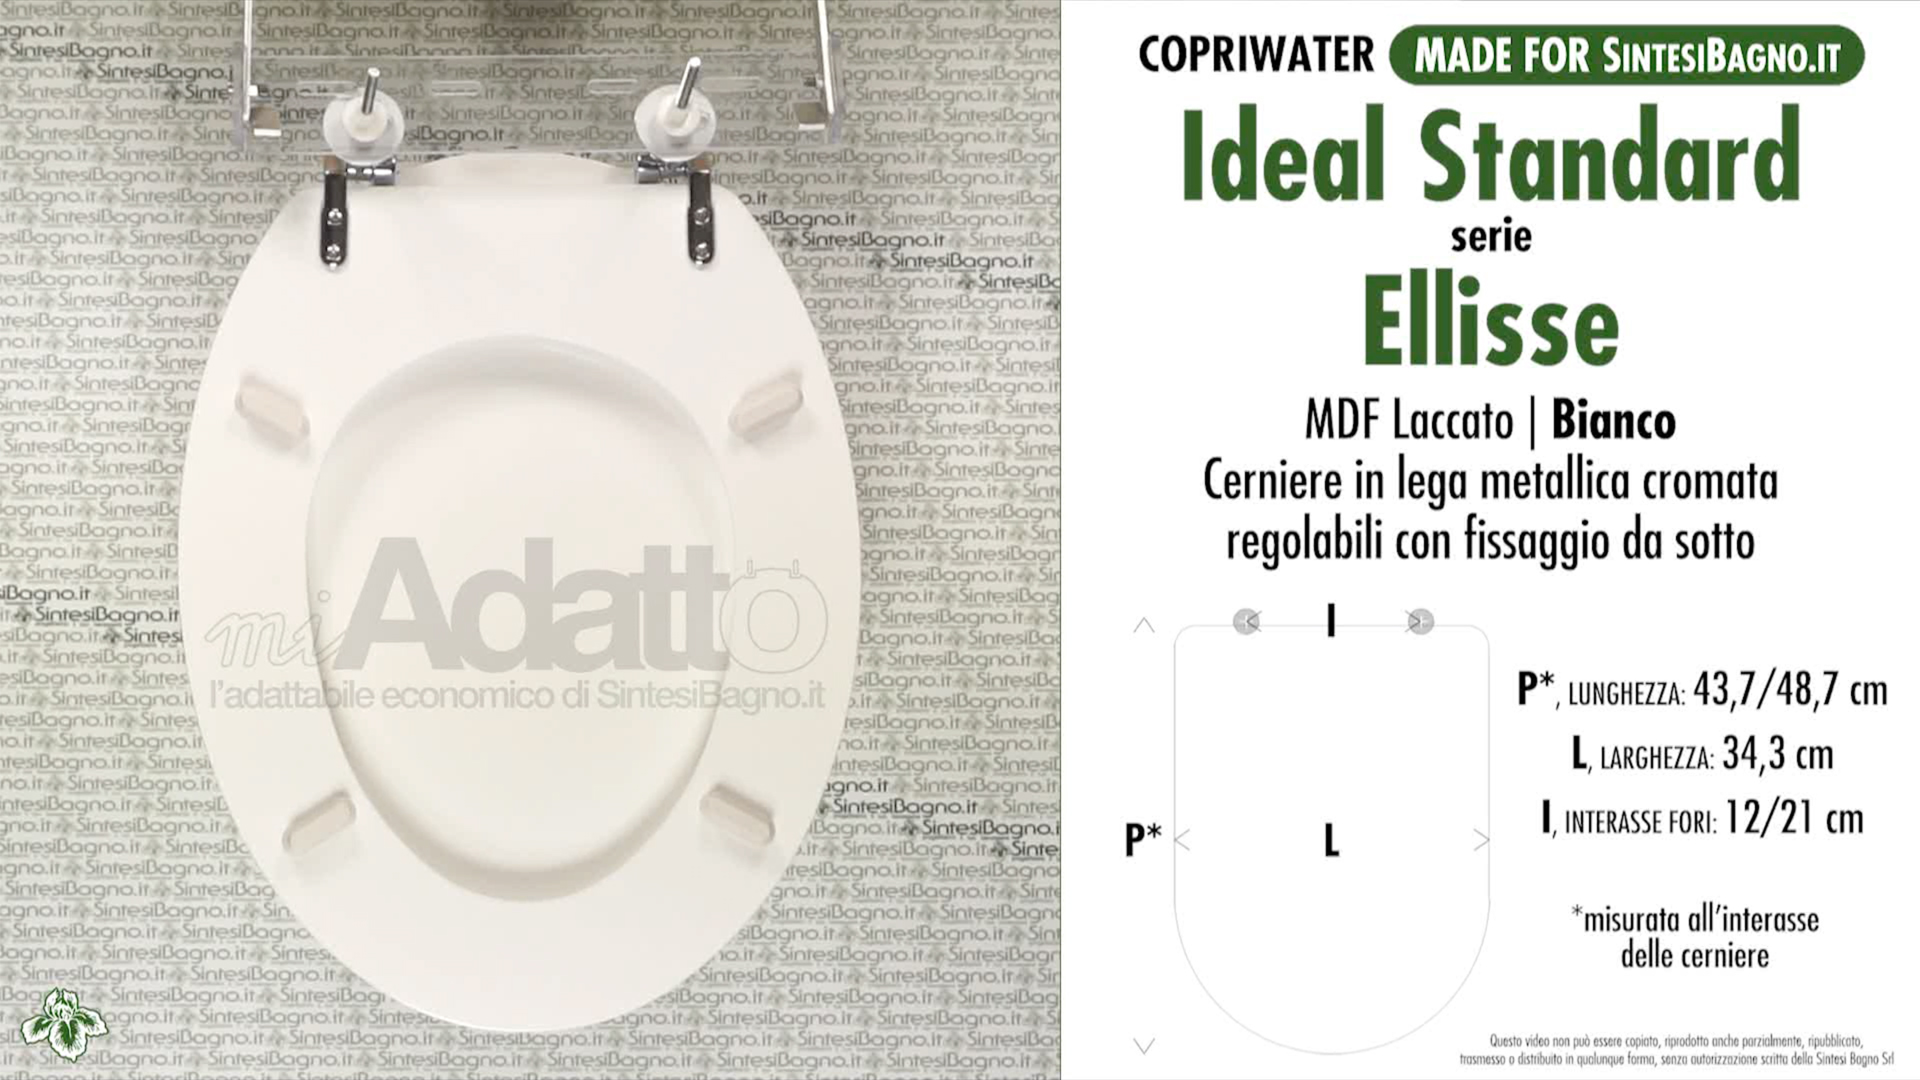 Copriwater economico per vaso ellisse ideal standard for Copriwater ellisse ideal standard